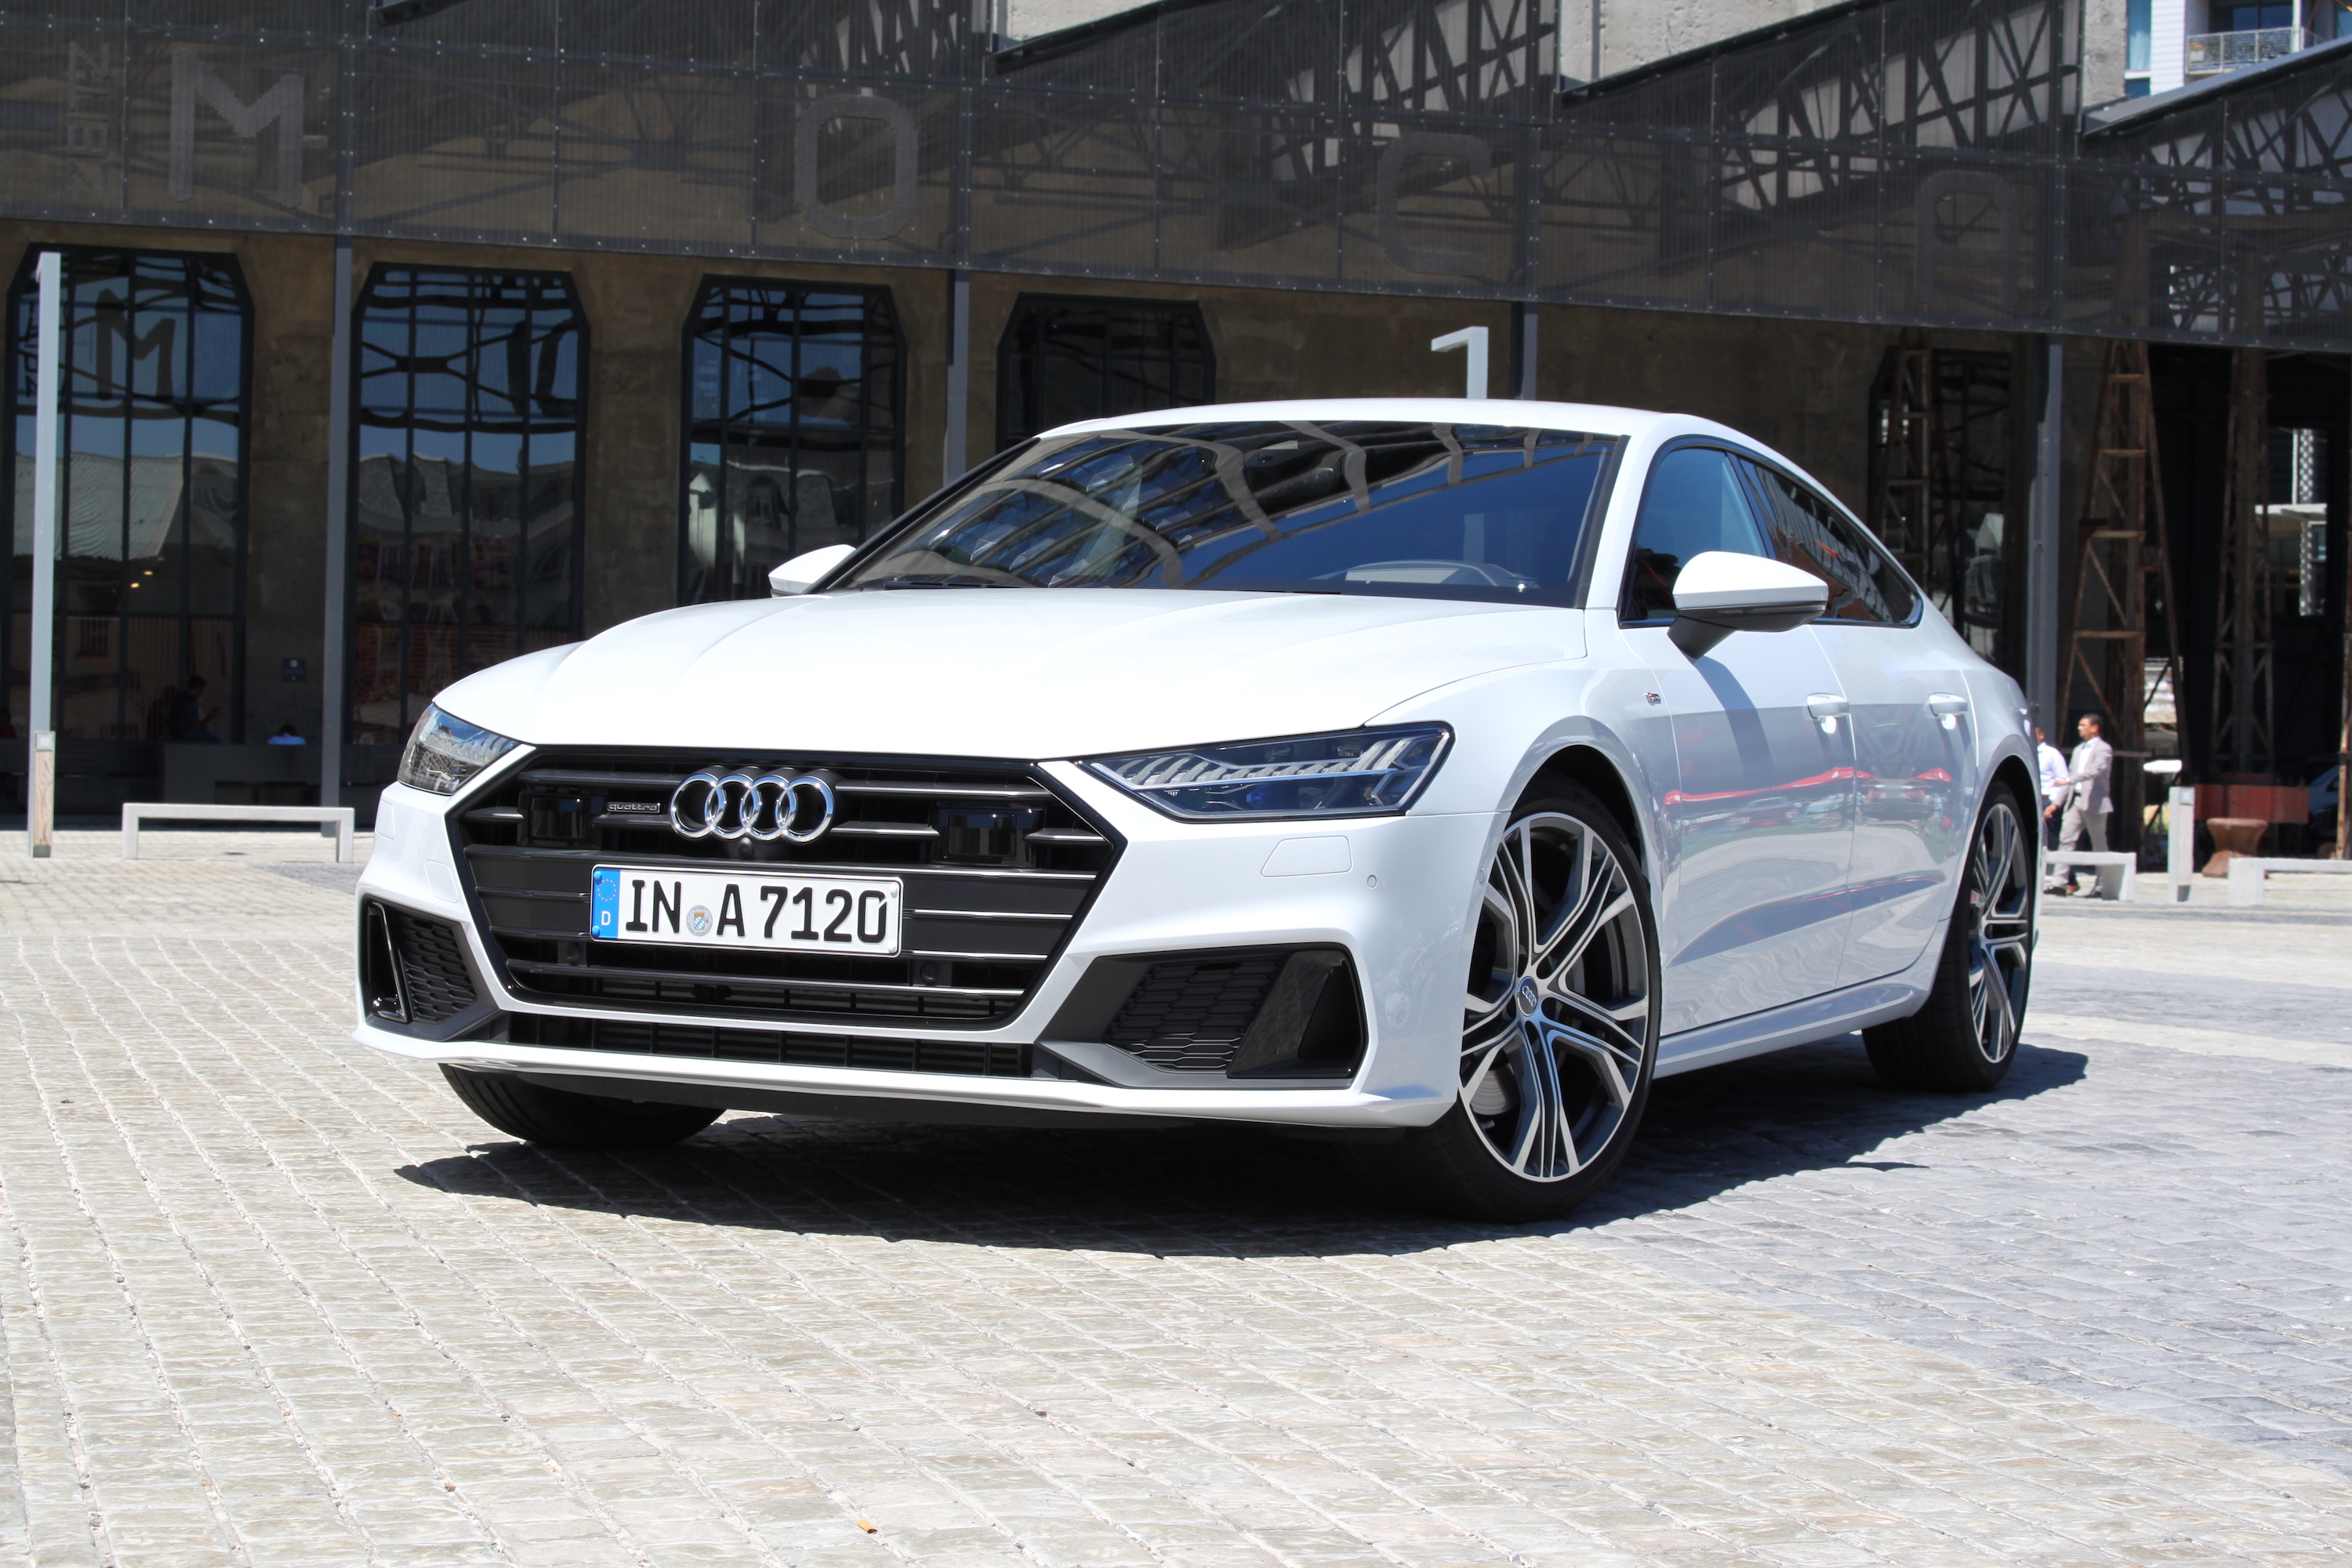 the senatus displaywidetall love a audi new magnificent about we article all features wkxfrp